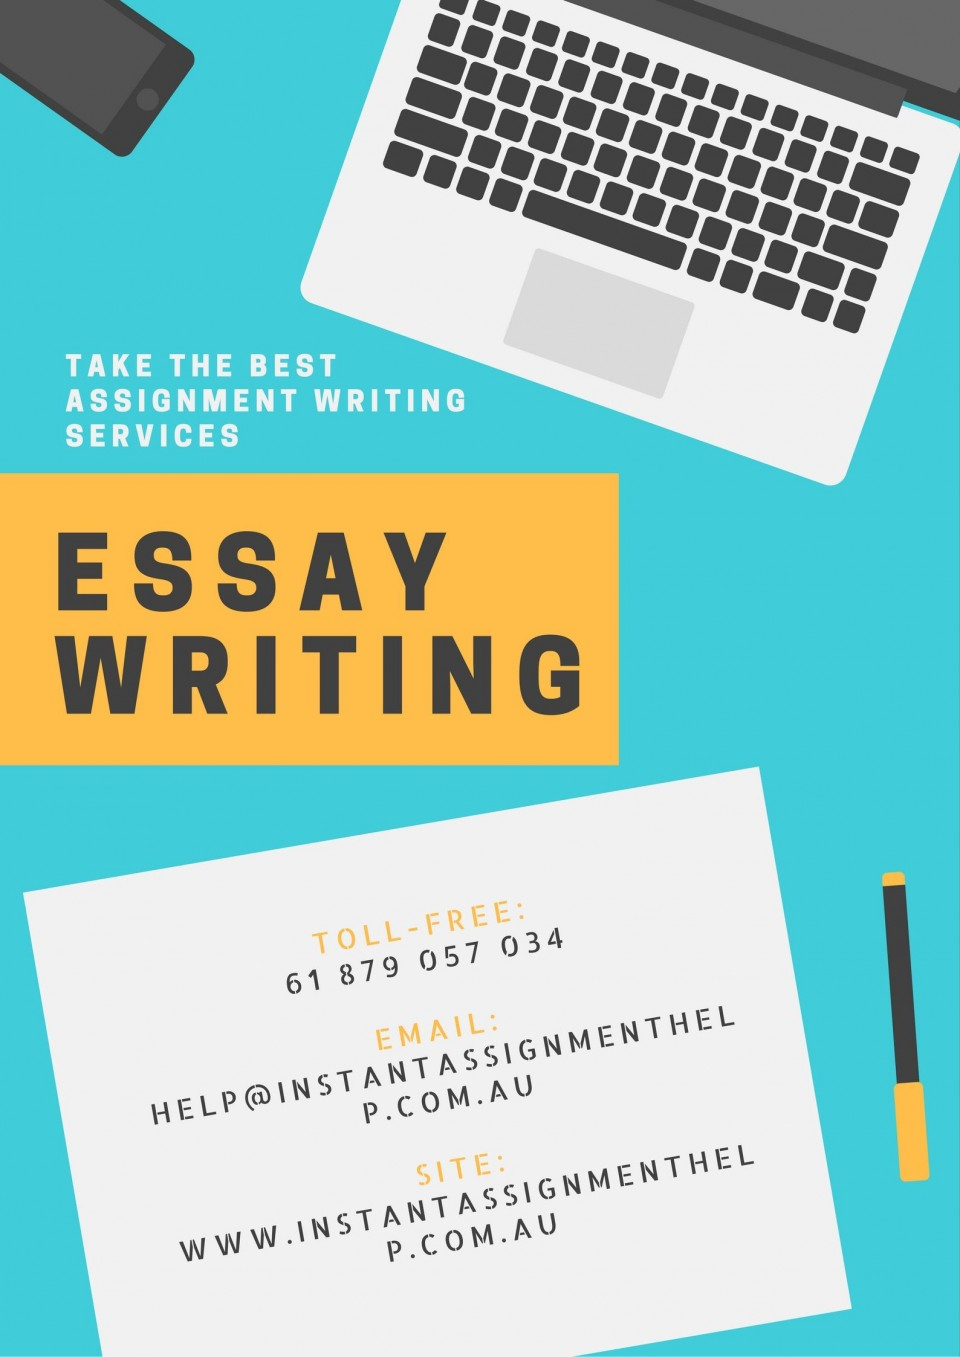 004 Essay Writing Help Example Frightening Scholarships For High School Students Cheap Service Australia Middle 960